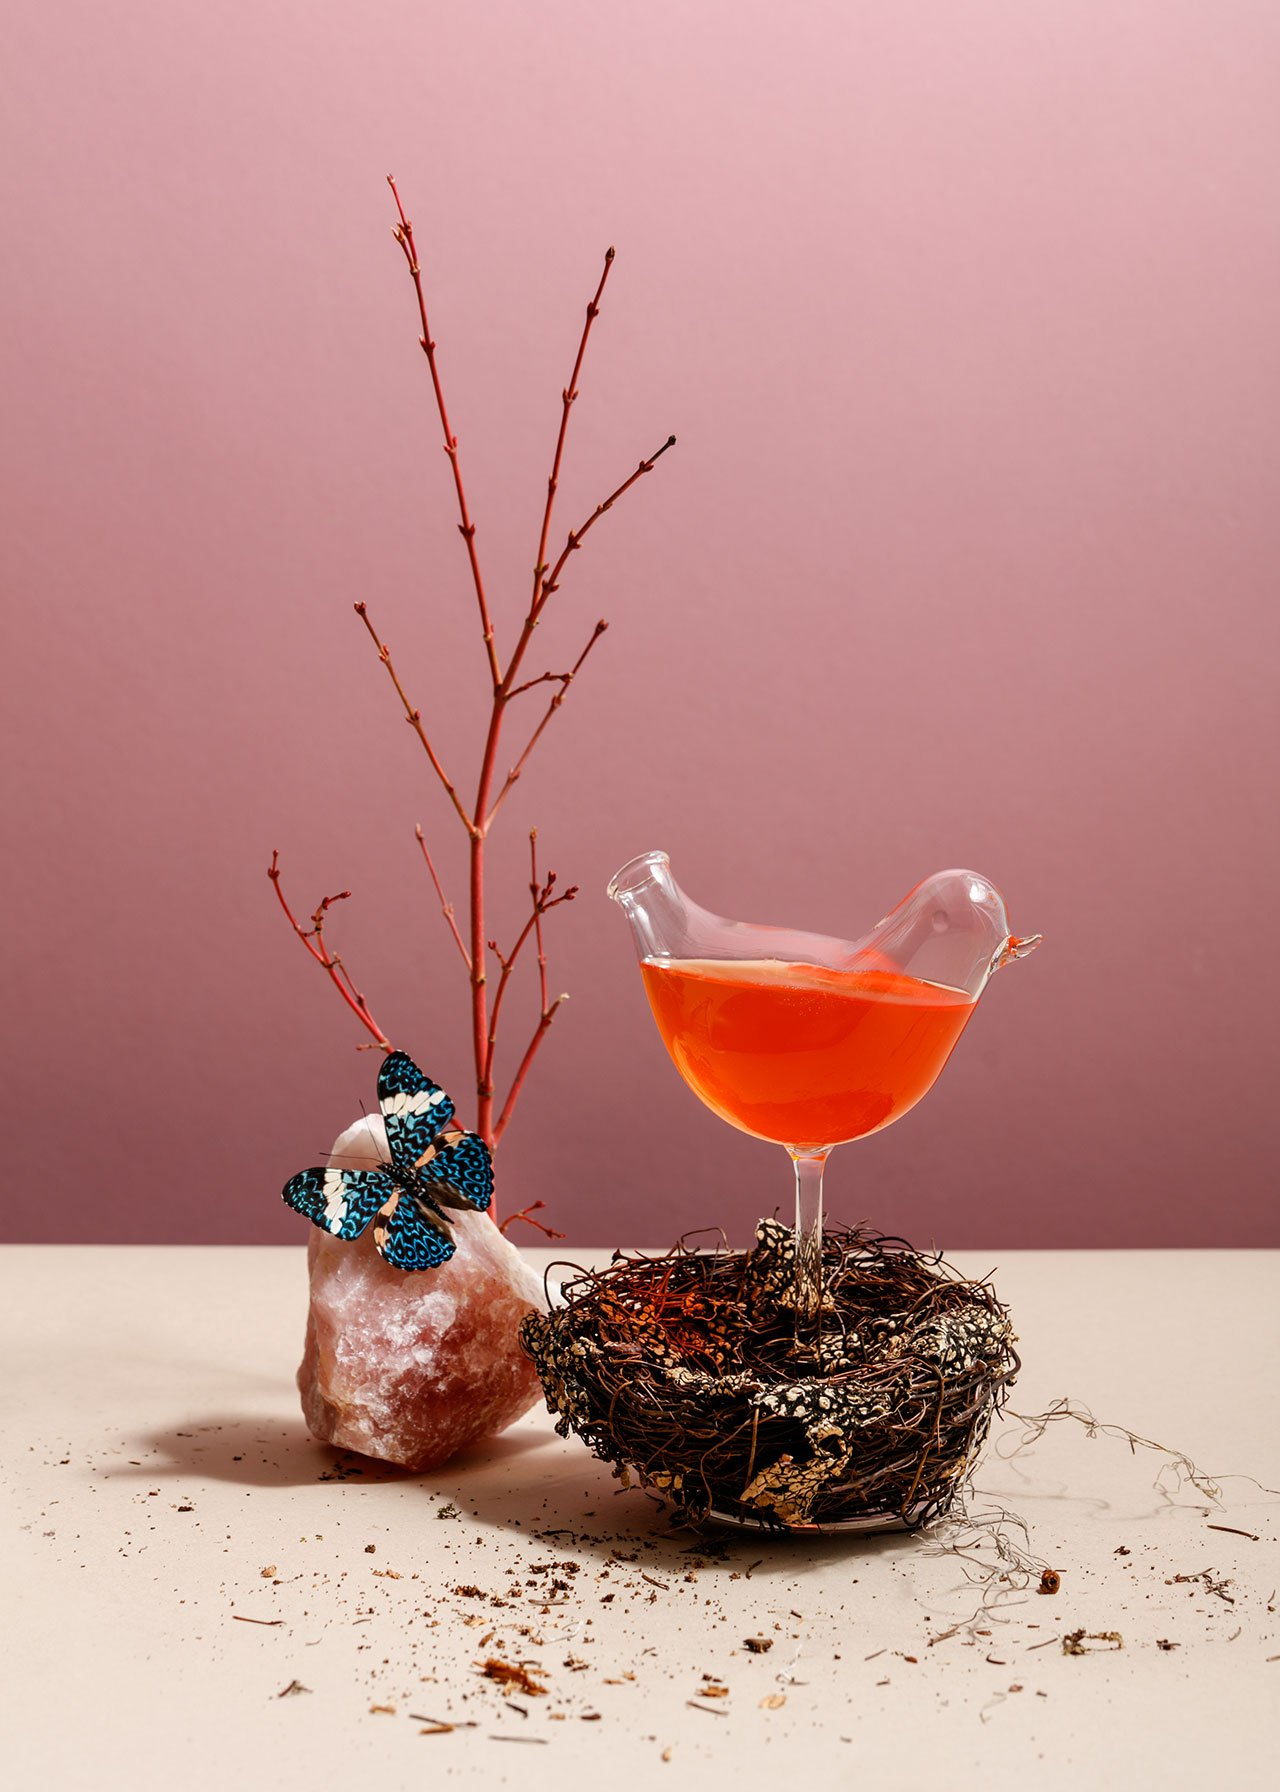 Pretty Bird Cocktail. Photo by Ian Lanterman via v2com.